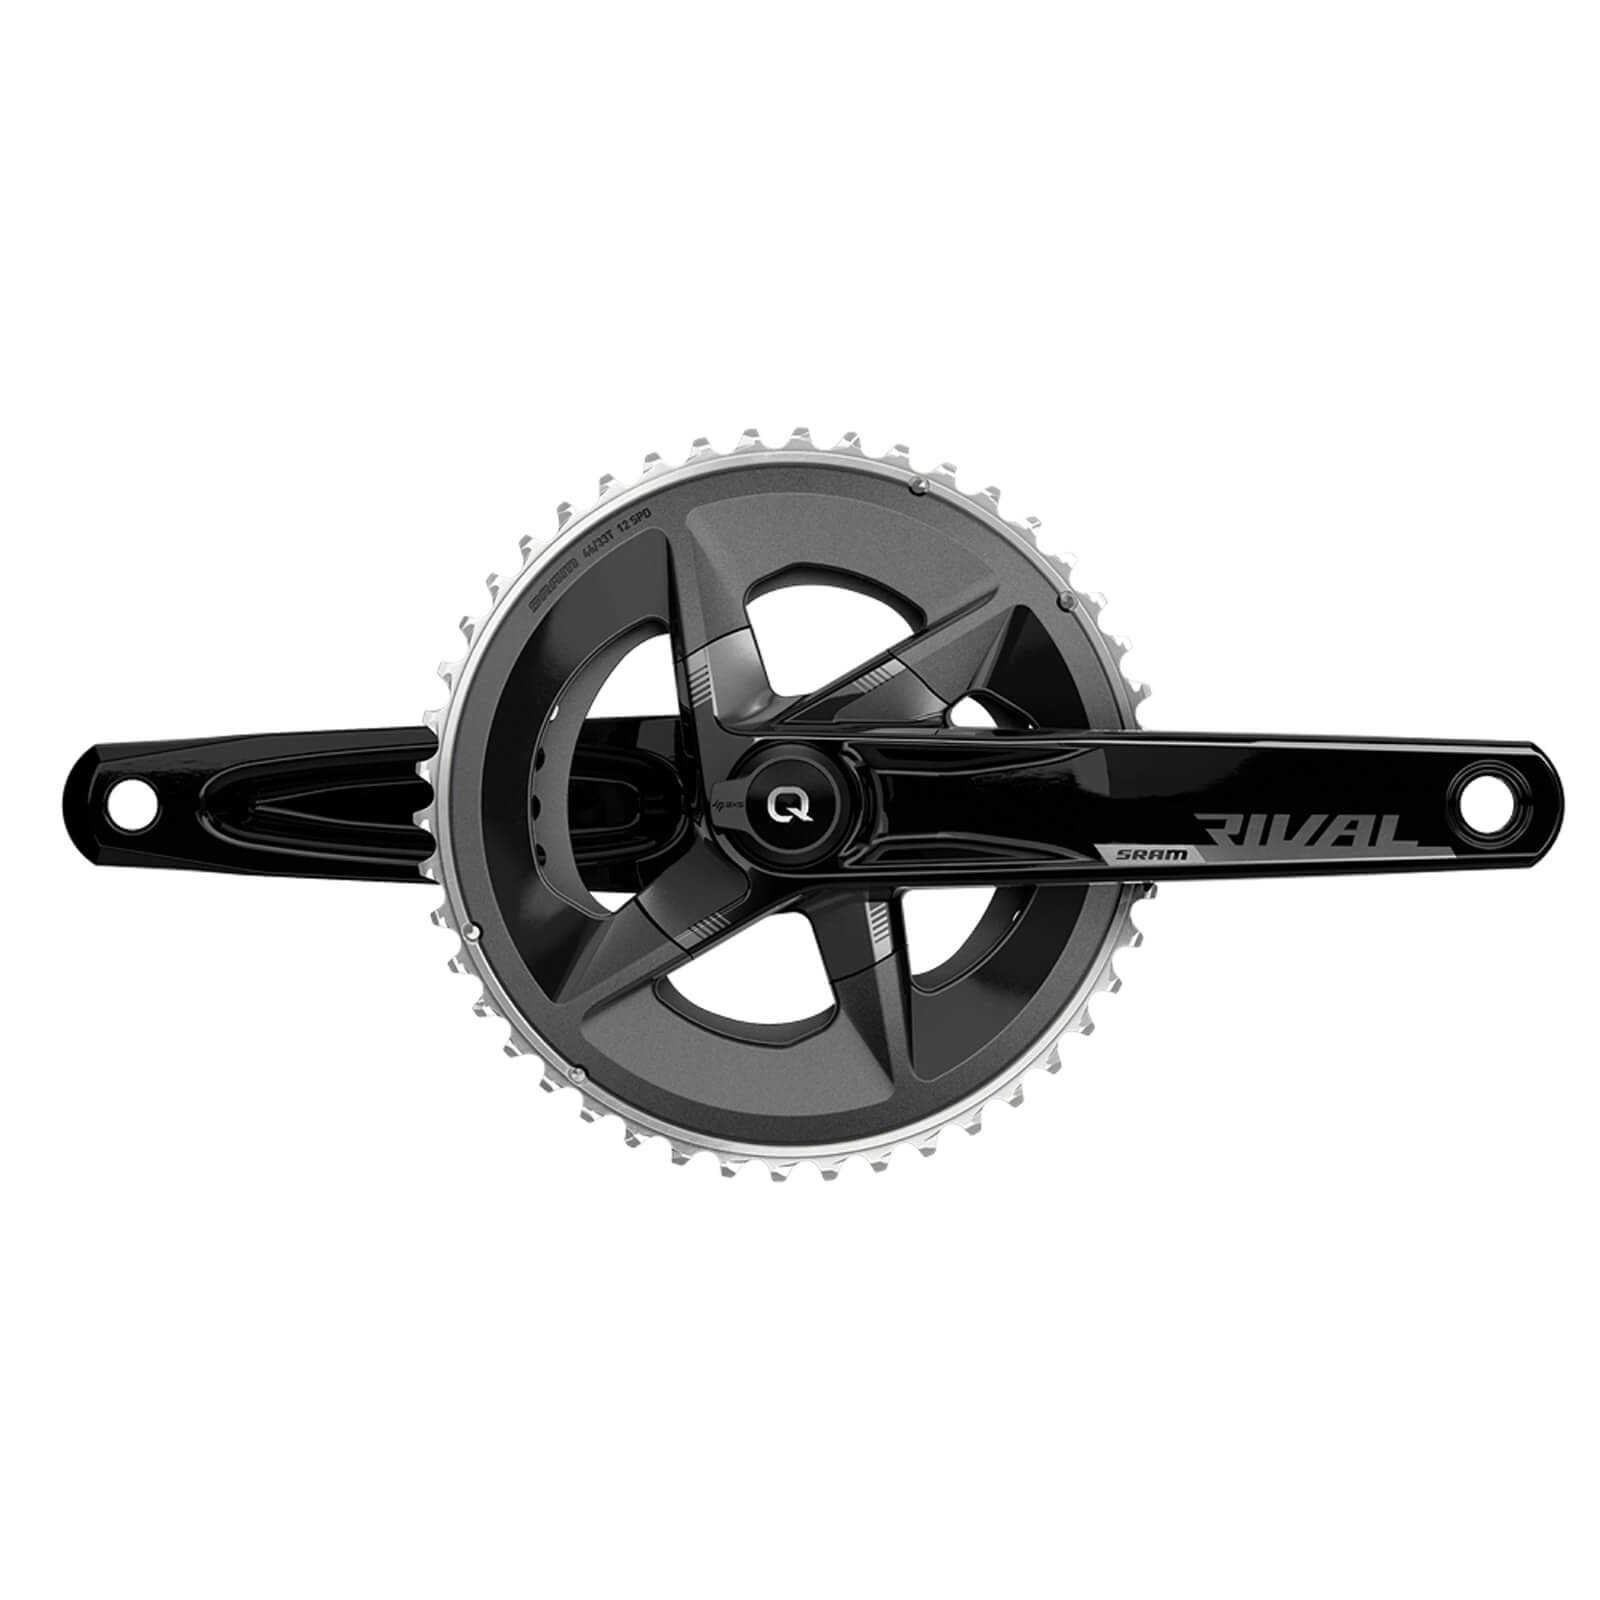 Sram Rival Axs Power Meter Chainset - 46/33 - 175mm